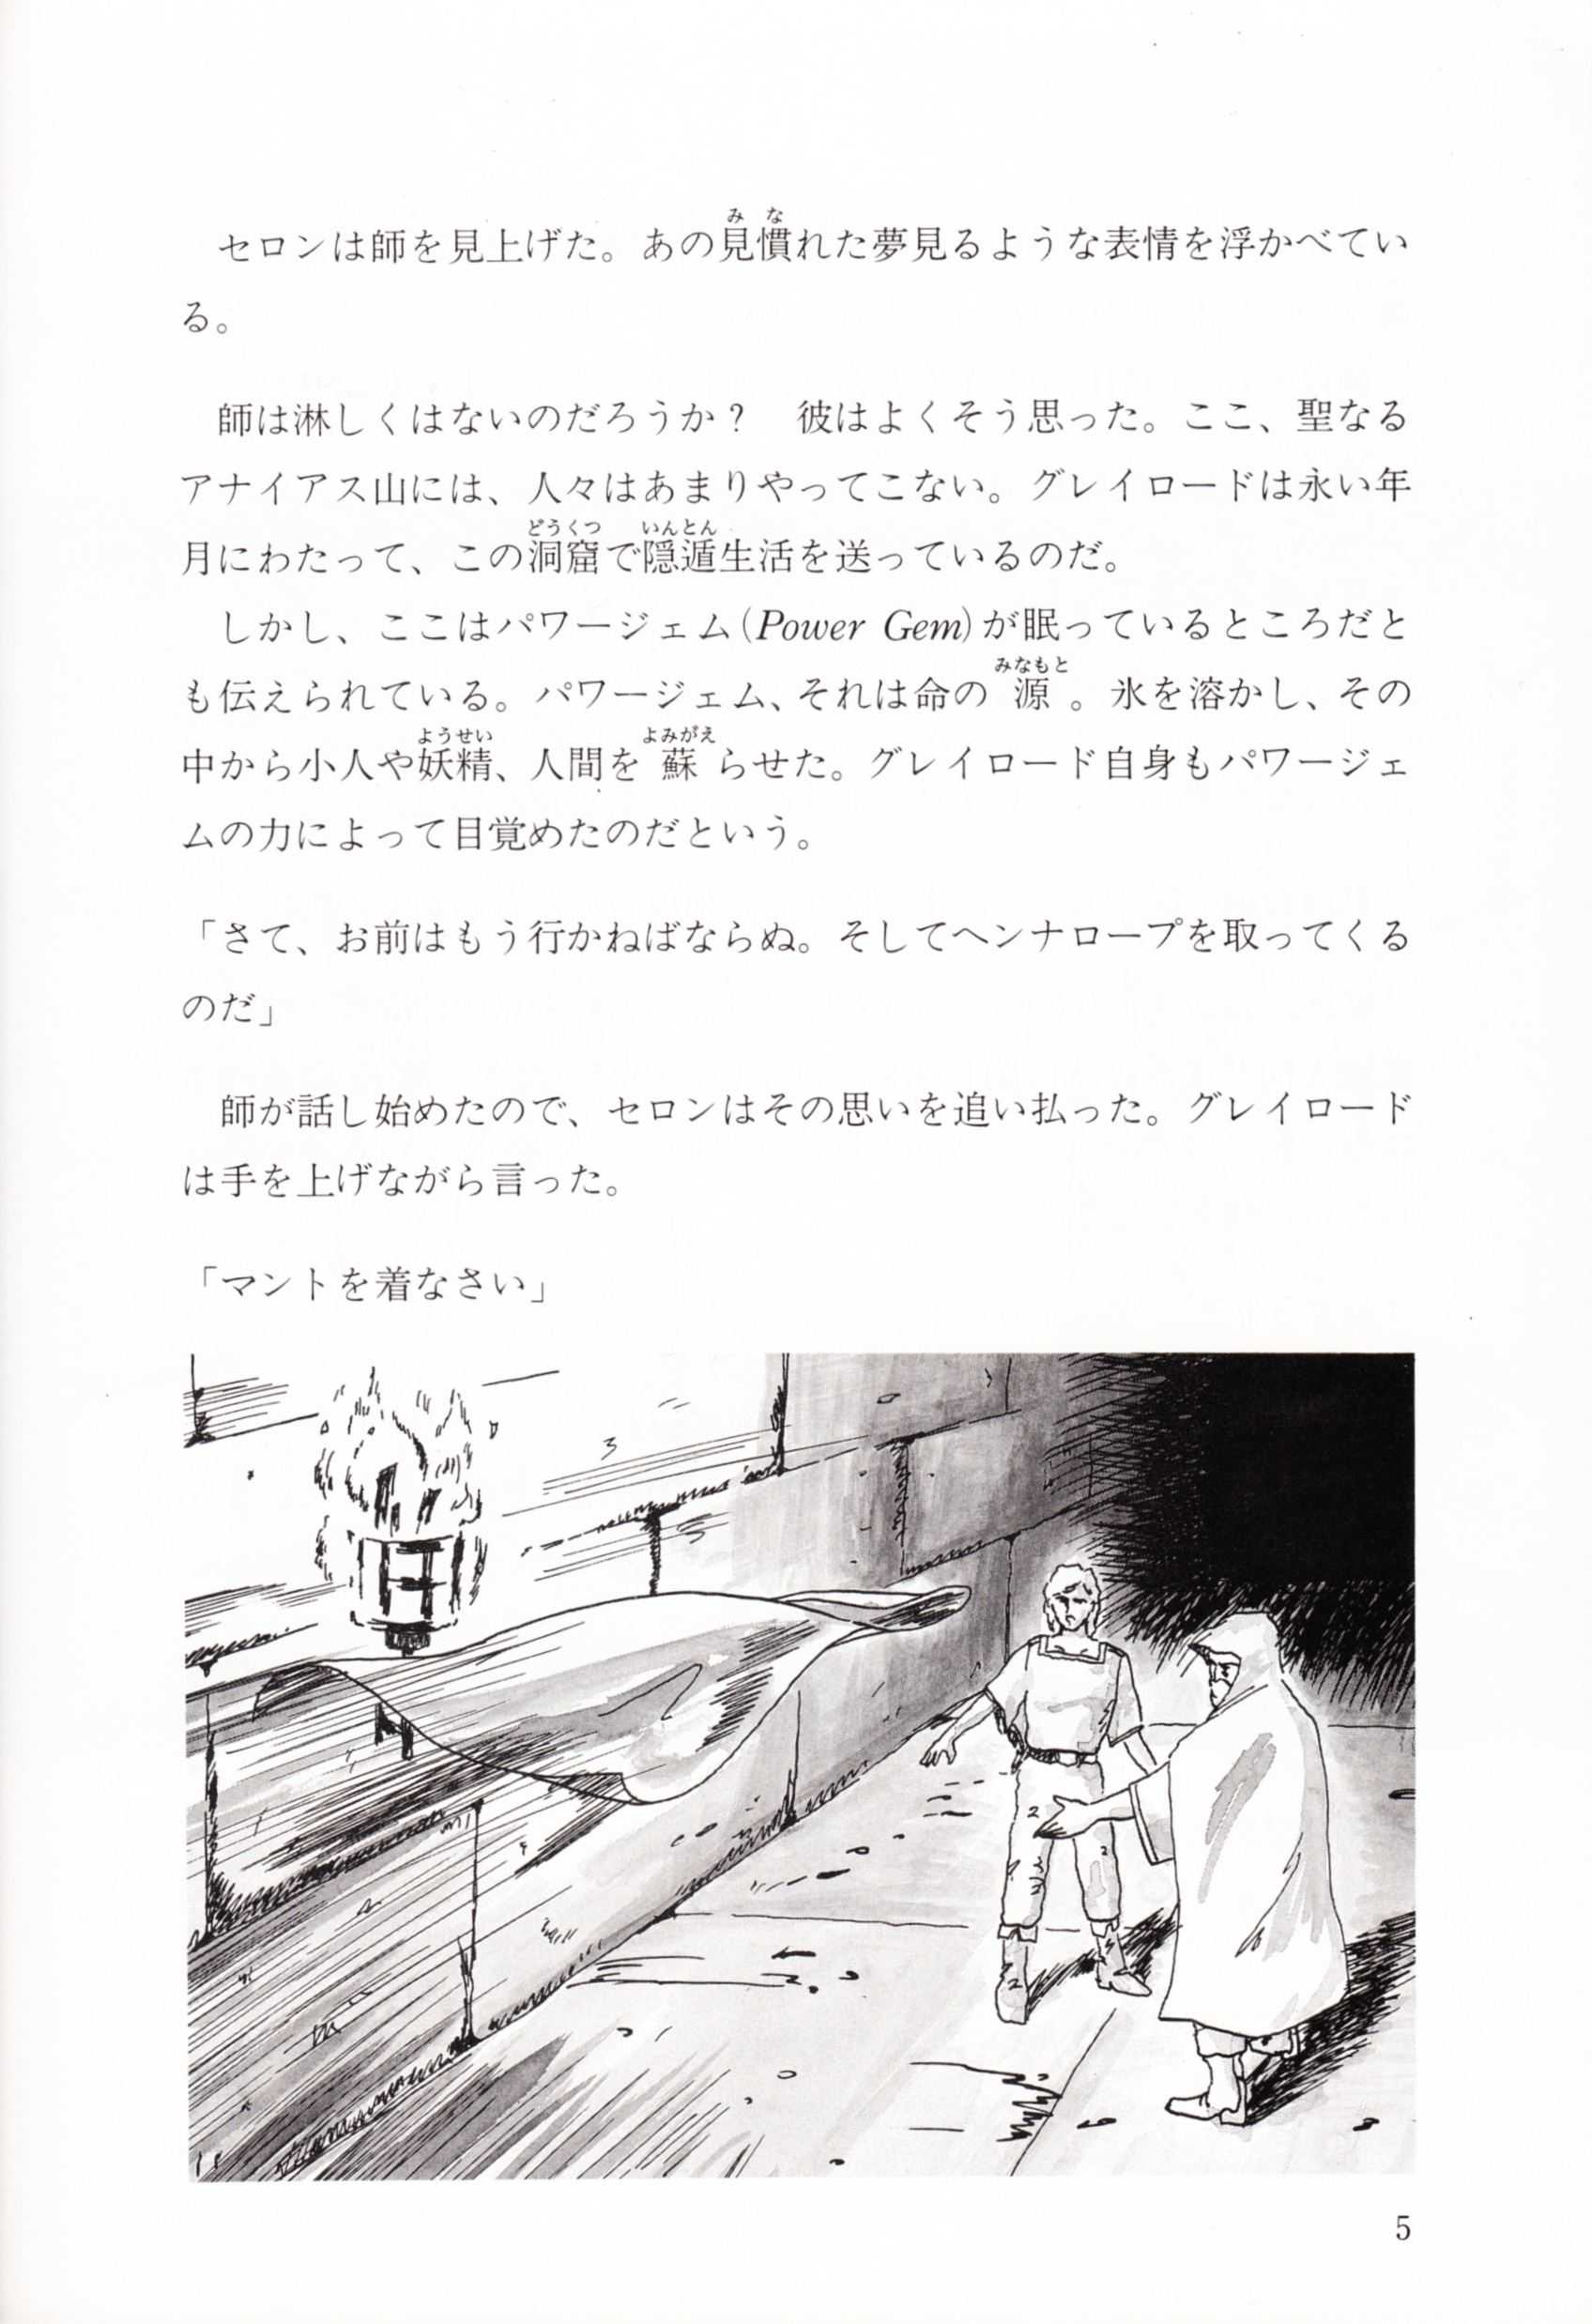 Game - Dungeon Master - JP - FM Towns - Story Guide - Page 007 - Scan